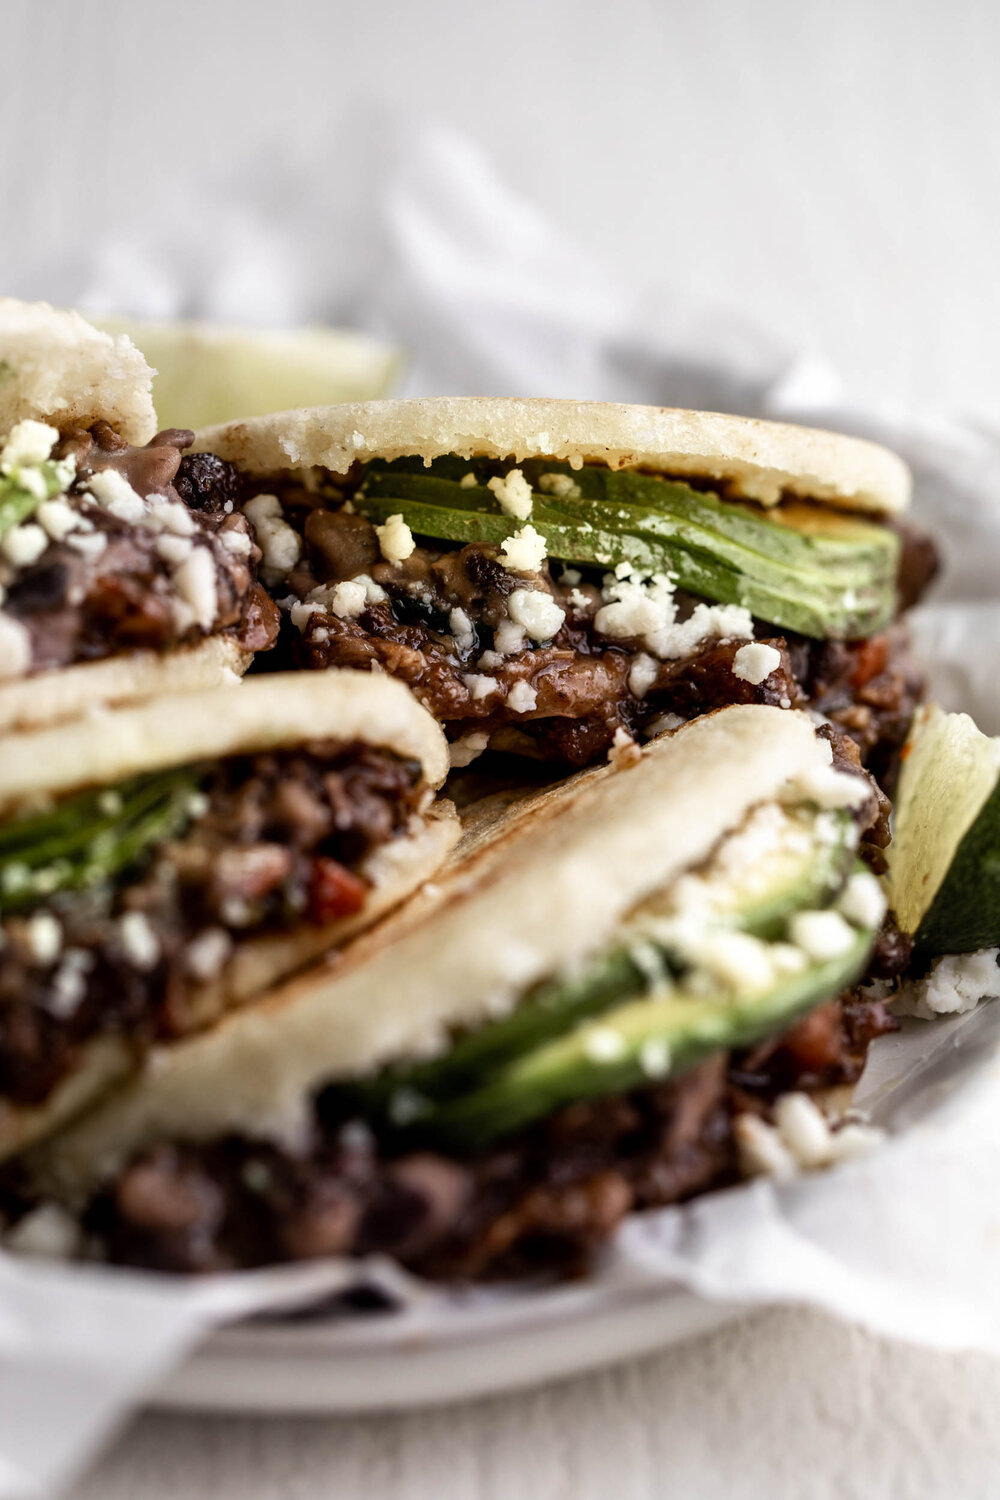 Braised Oxtail Arepas with avocado and black beans-18.jpg